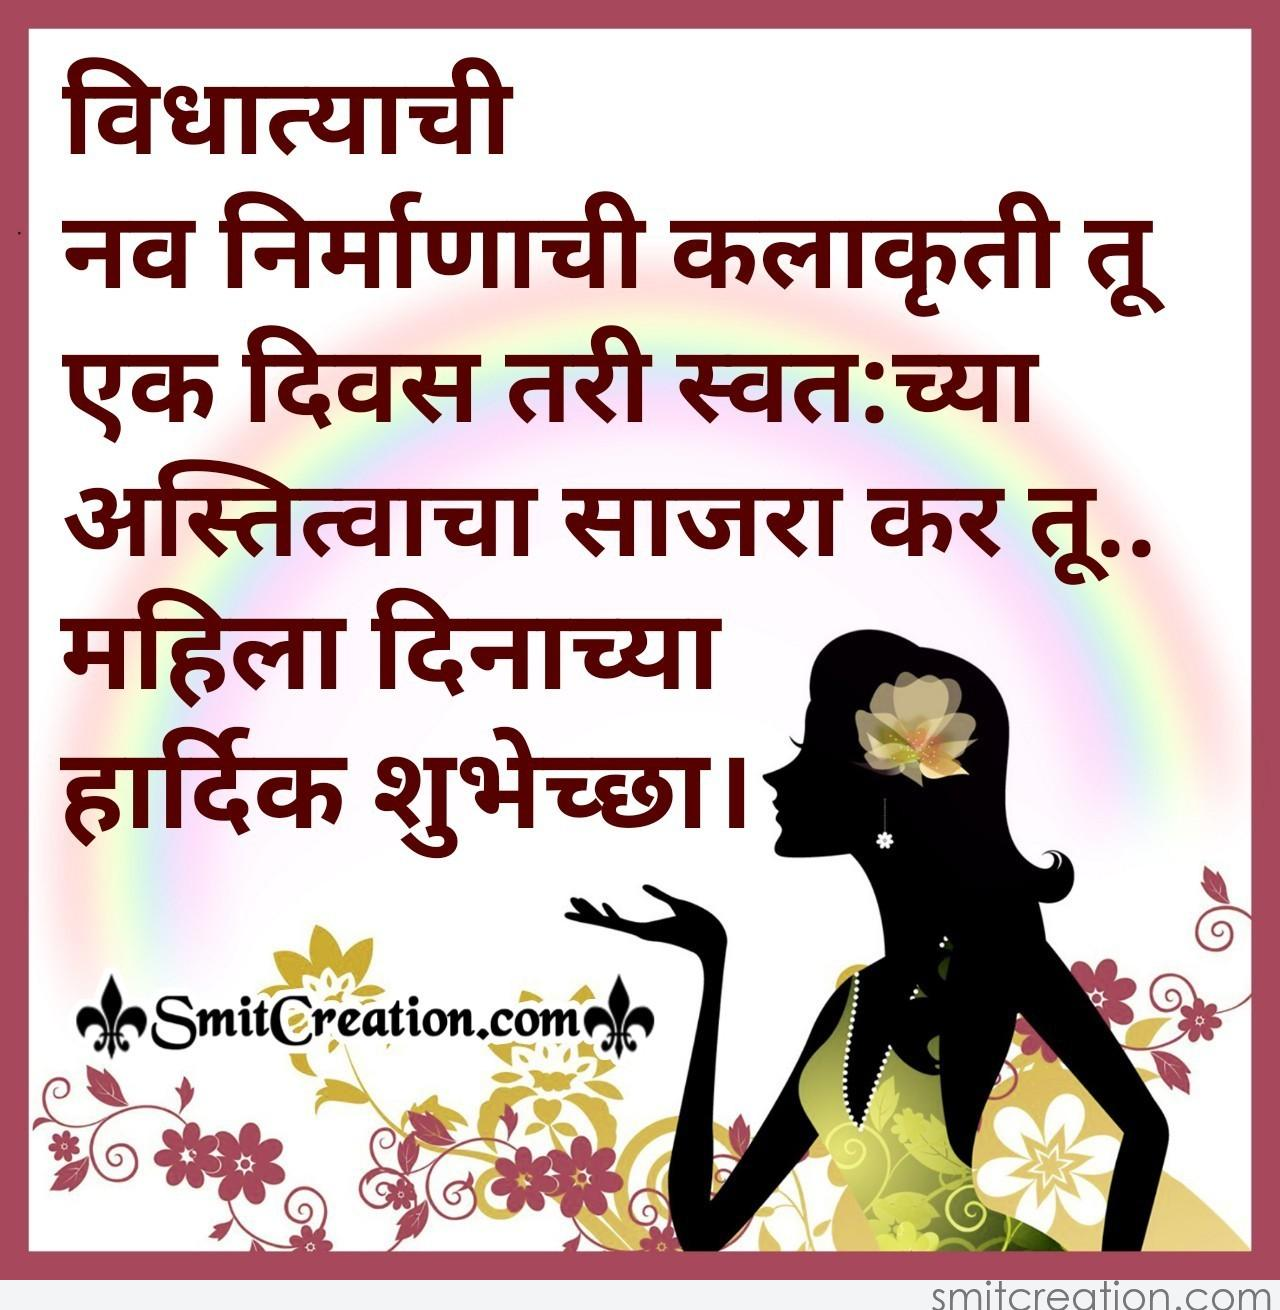 Women S Day Quote In Marathi Smitcreation Com